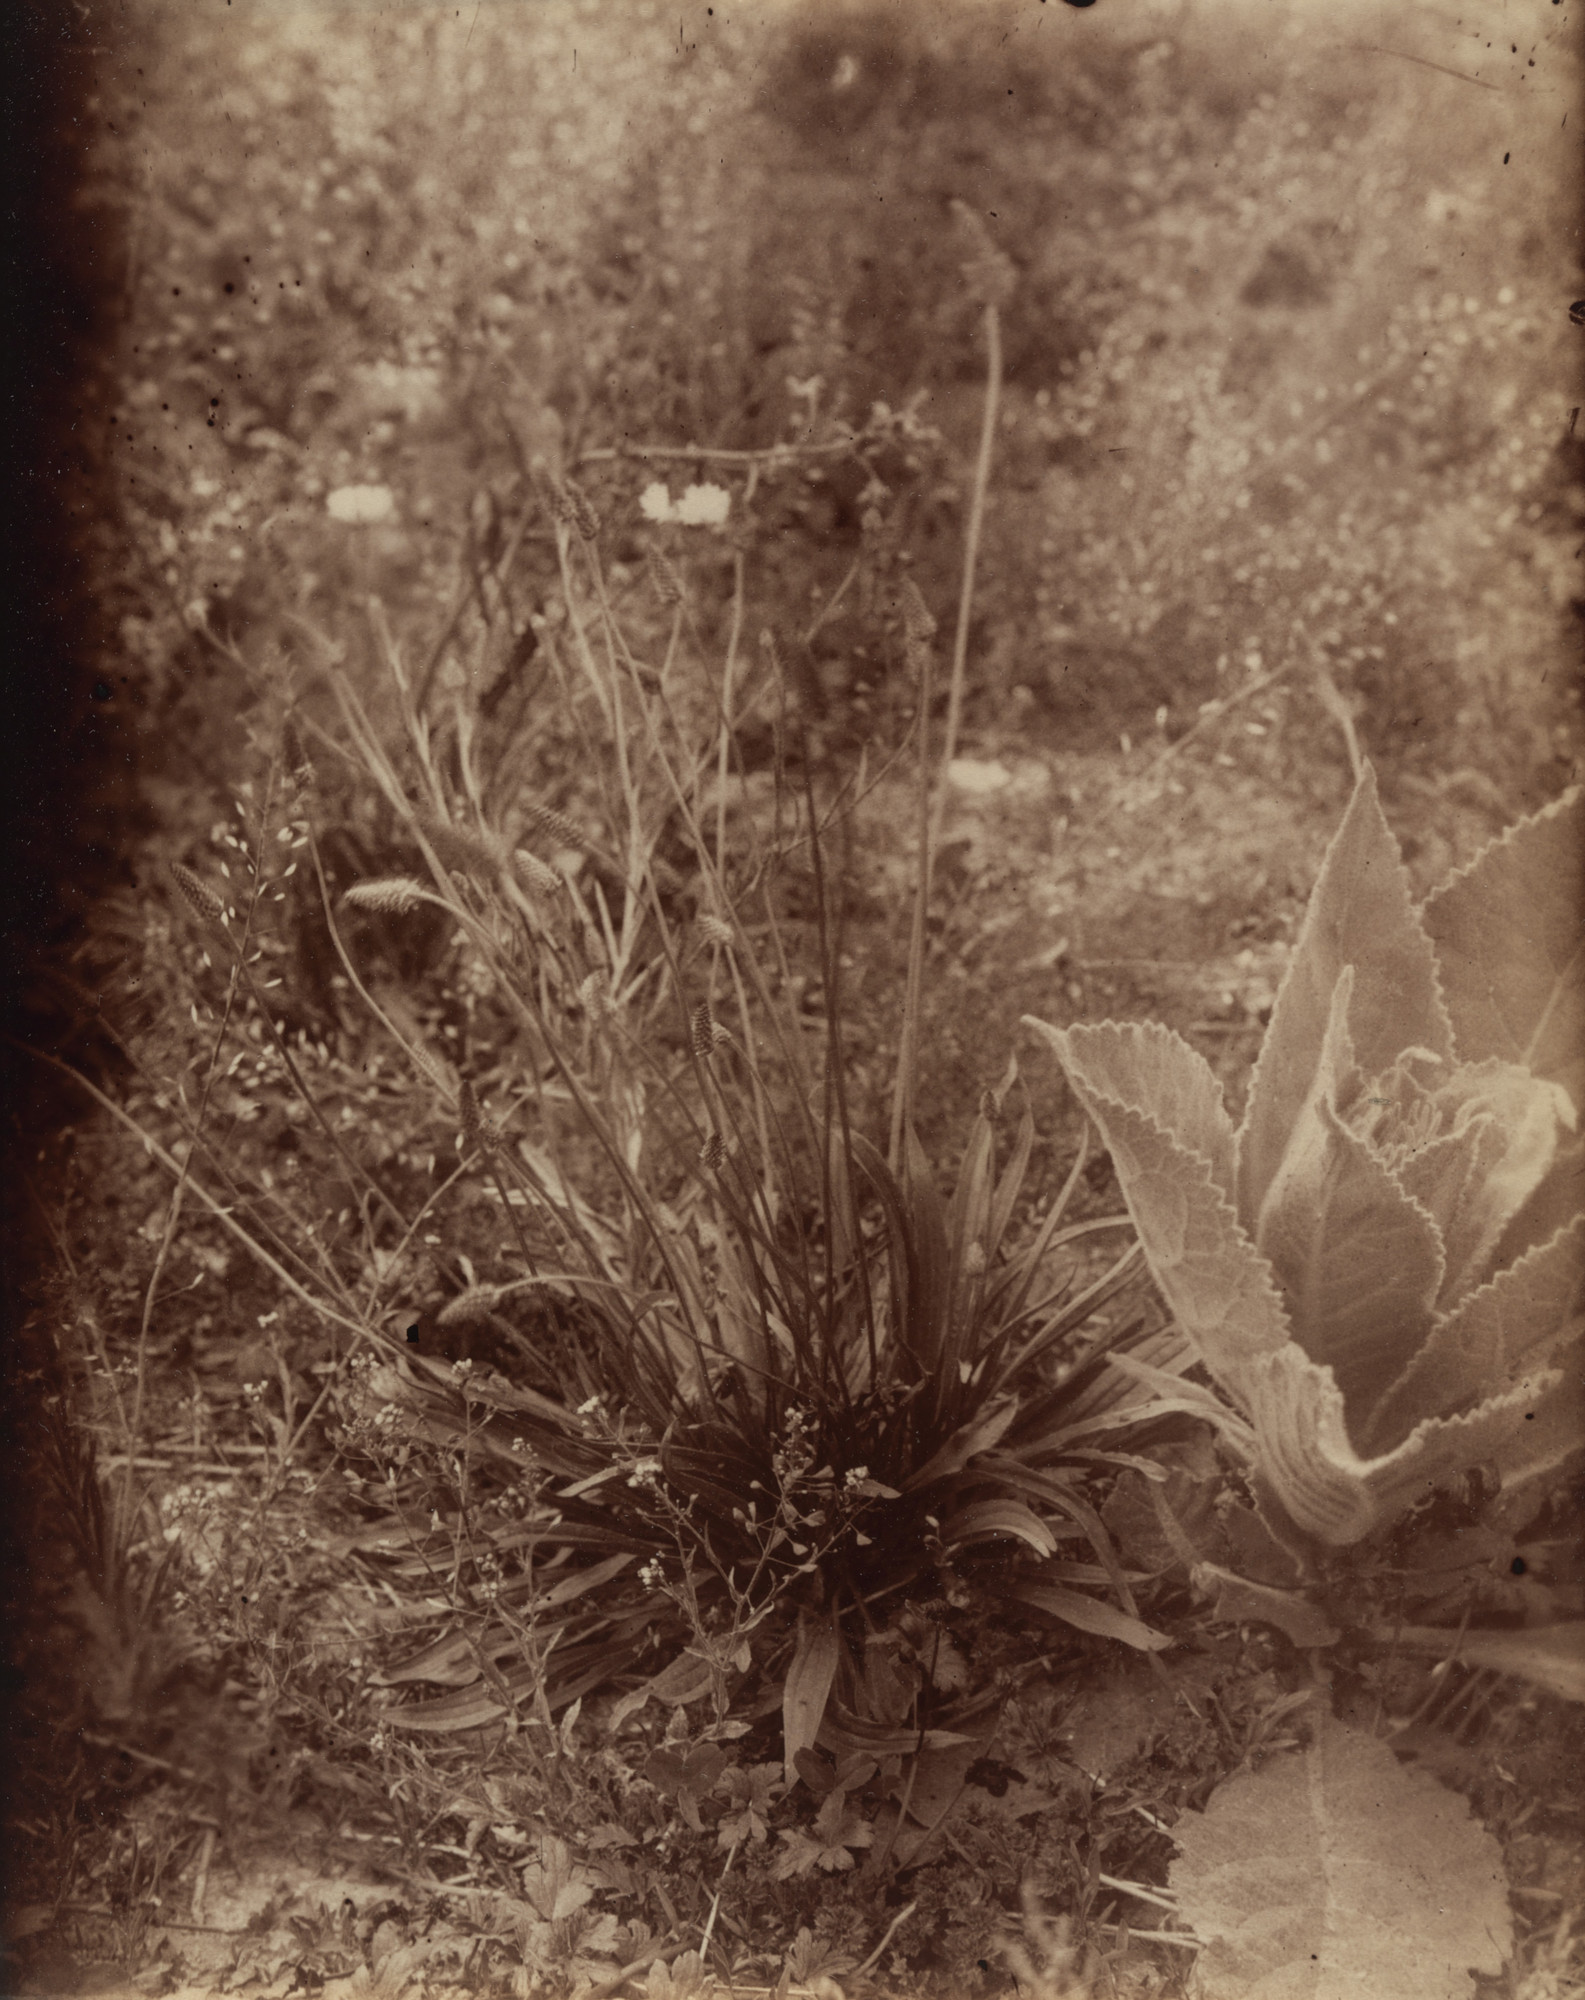 Eugène Atget. Plantain. Before 1900